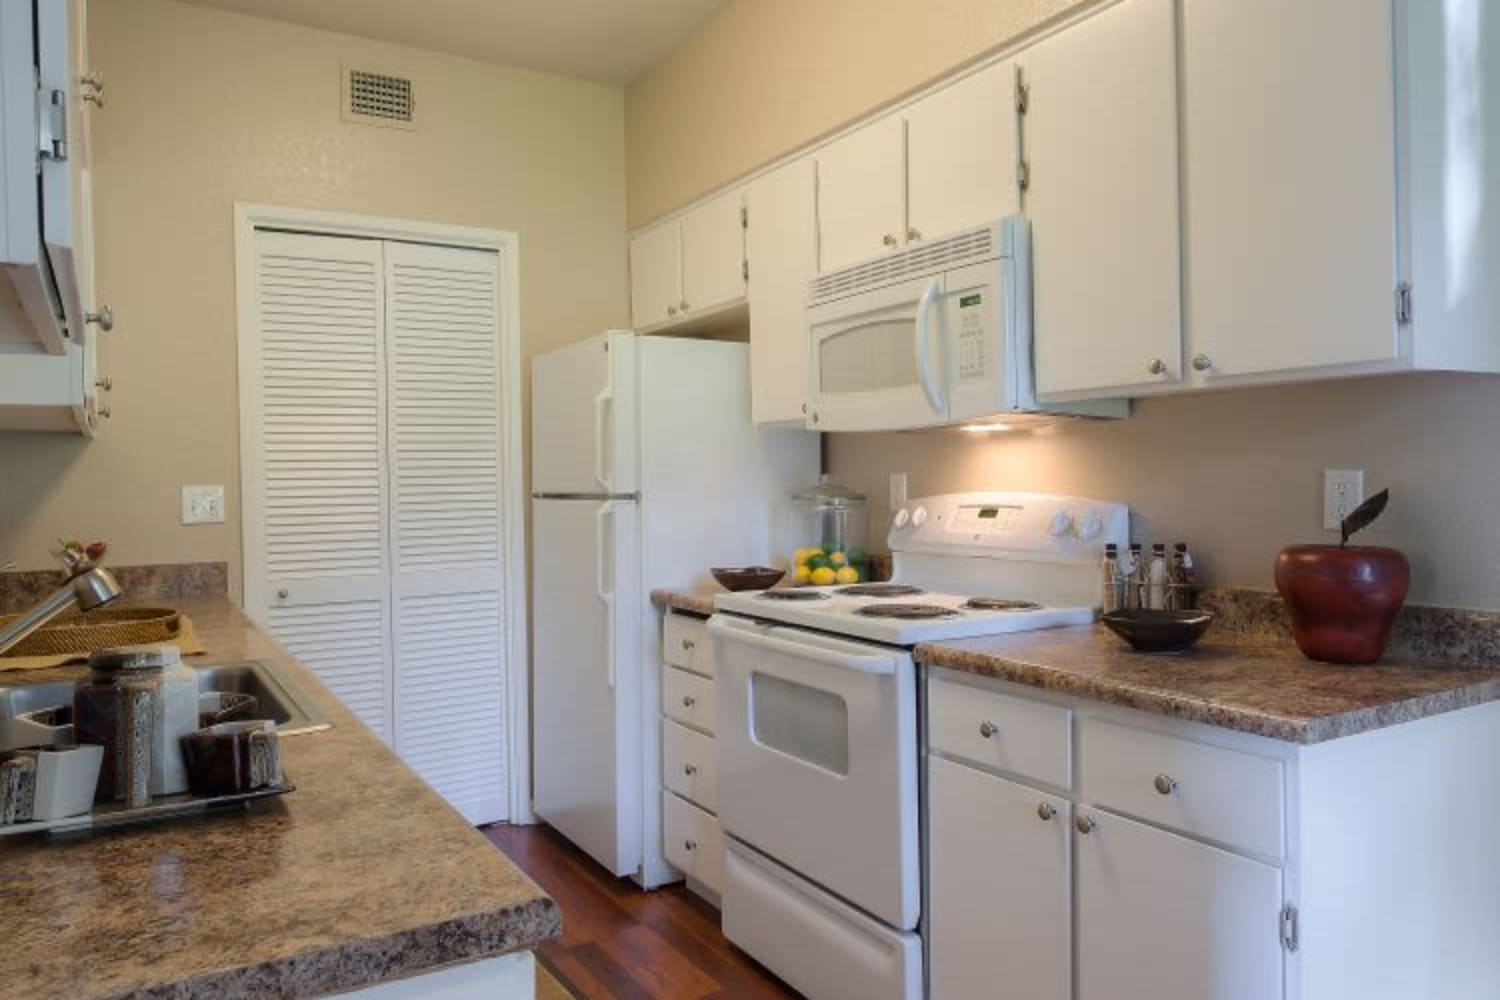 Cotton Wood Apartments in Dublin, California, offer updated kitchens